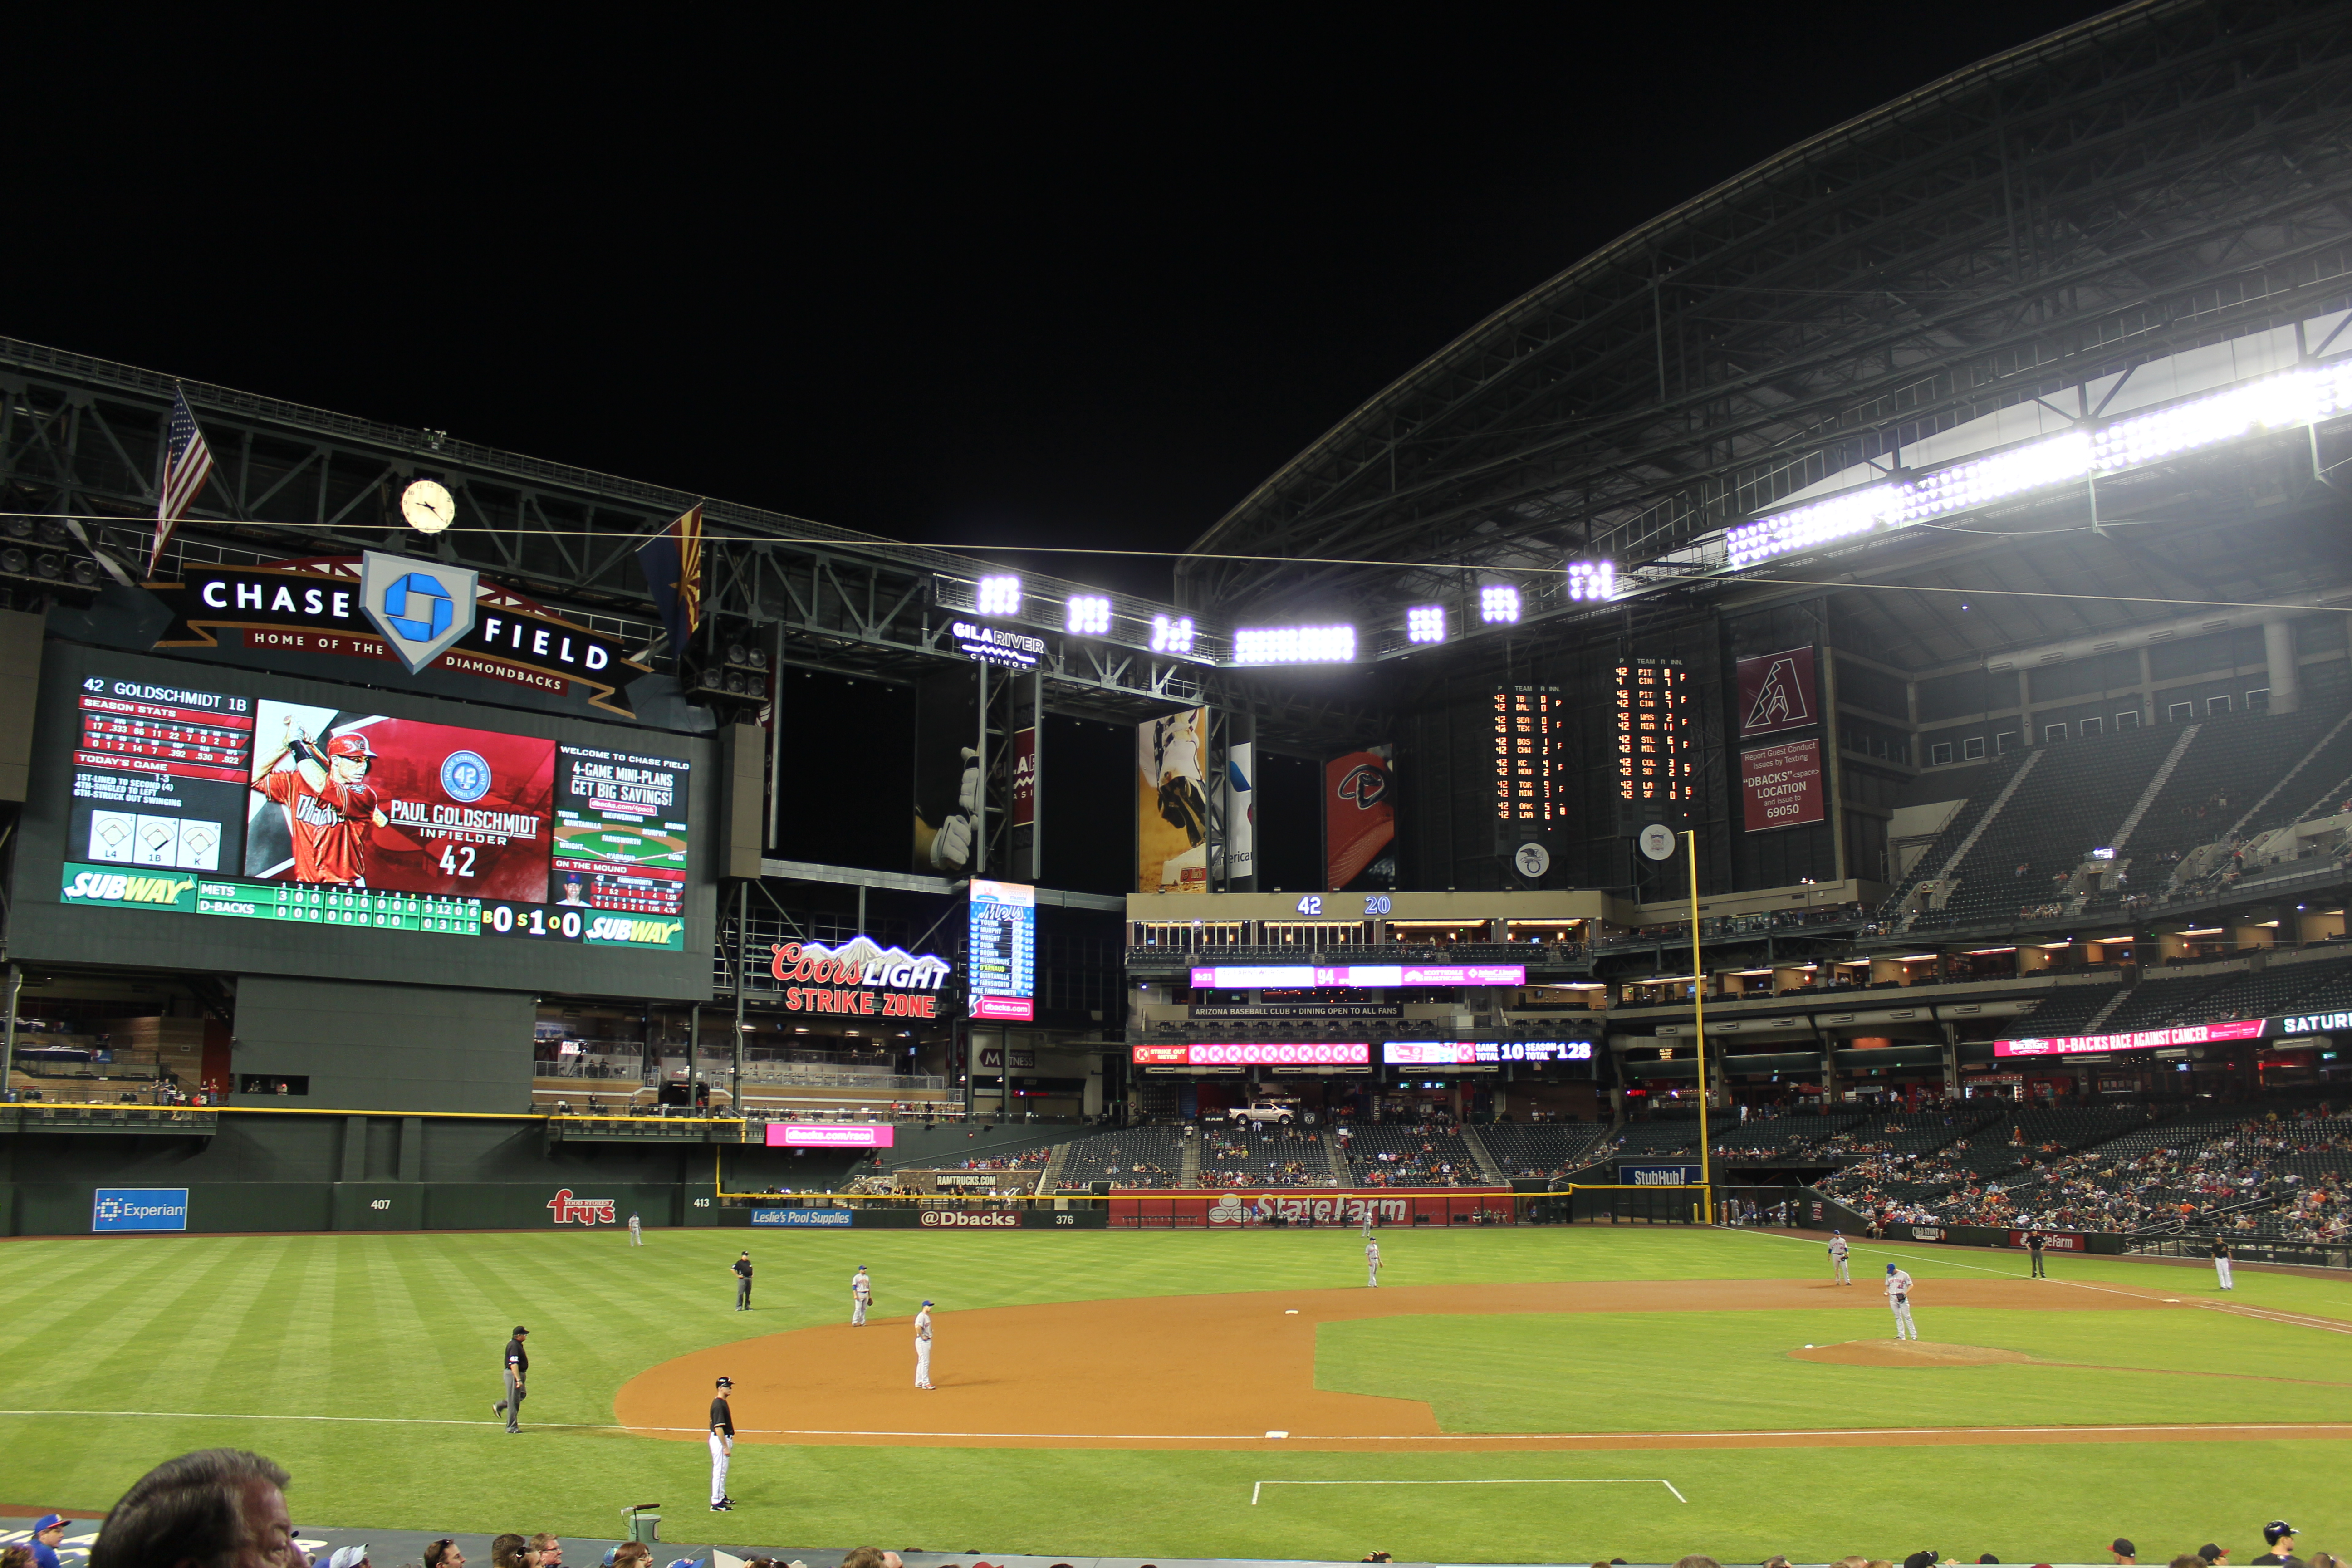 Chase Field from the seats on our baseball tour